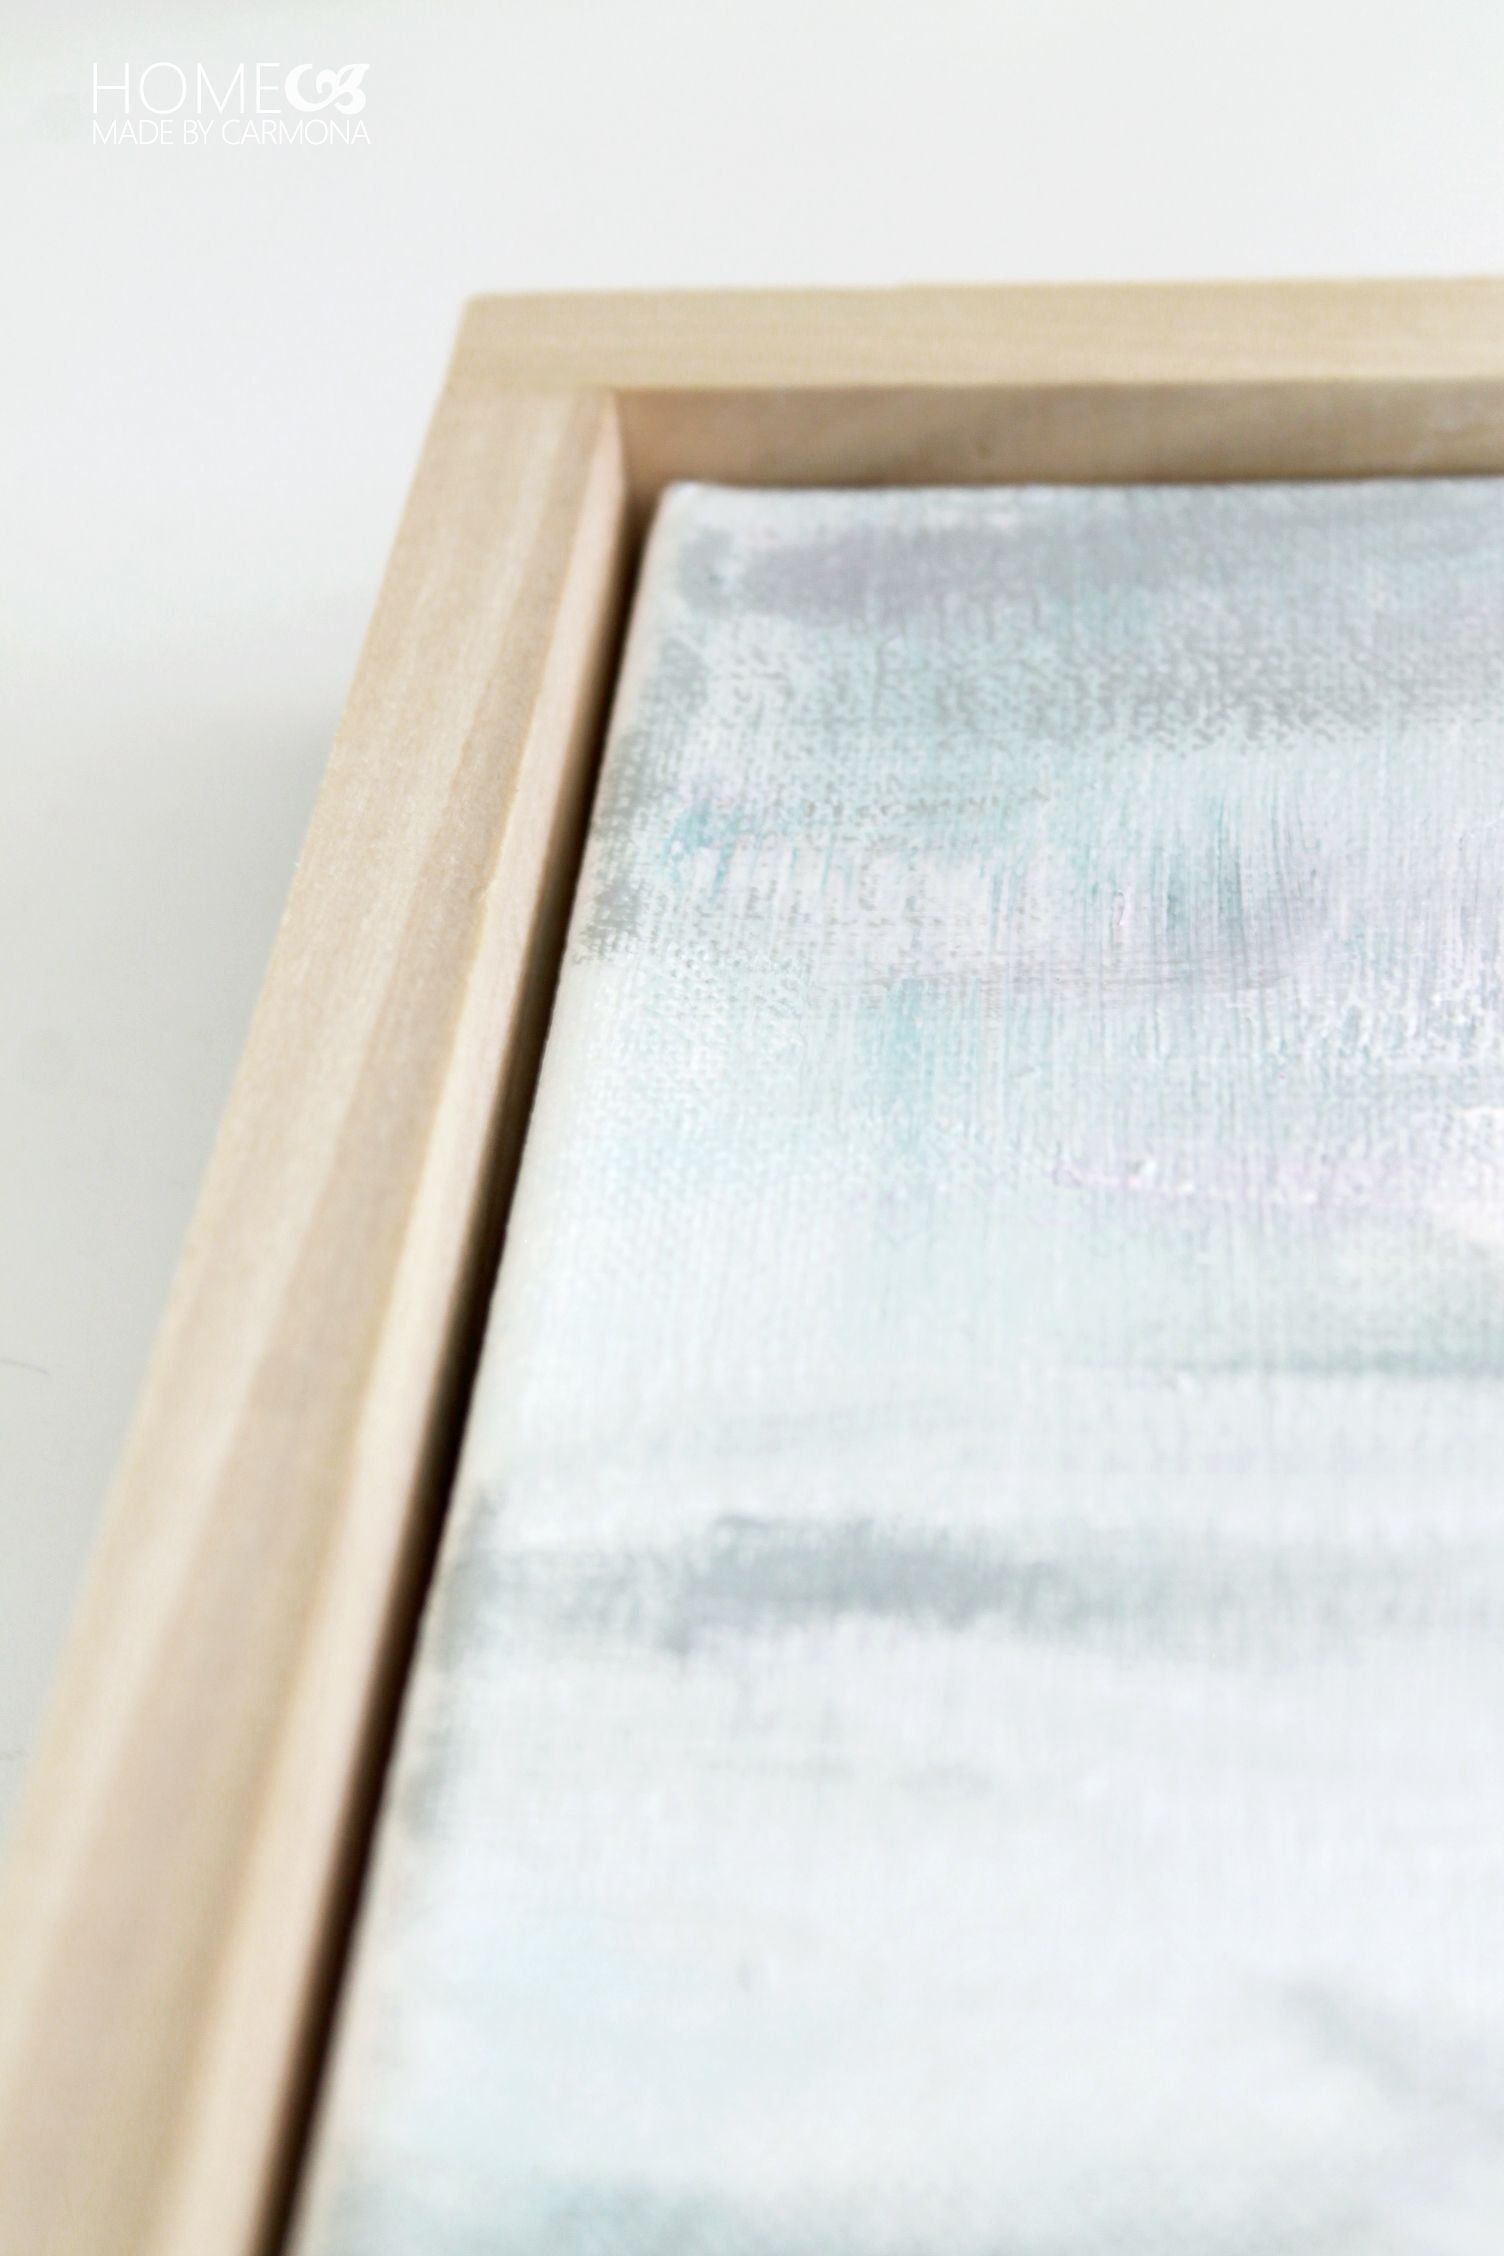 DIY Floating Frame Tutorial For $6! | Craftiness is happiness ...